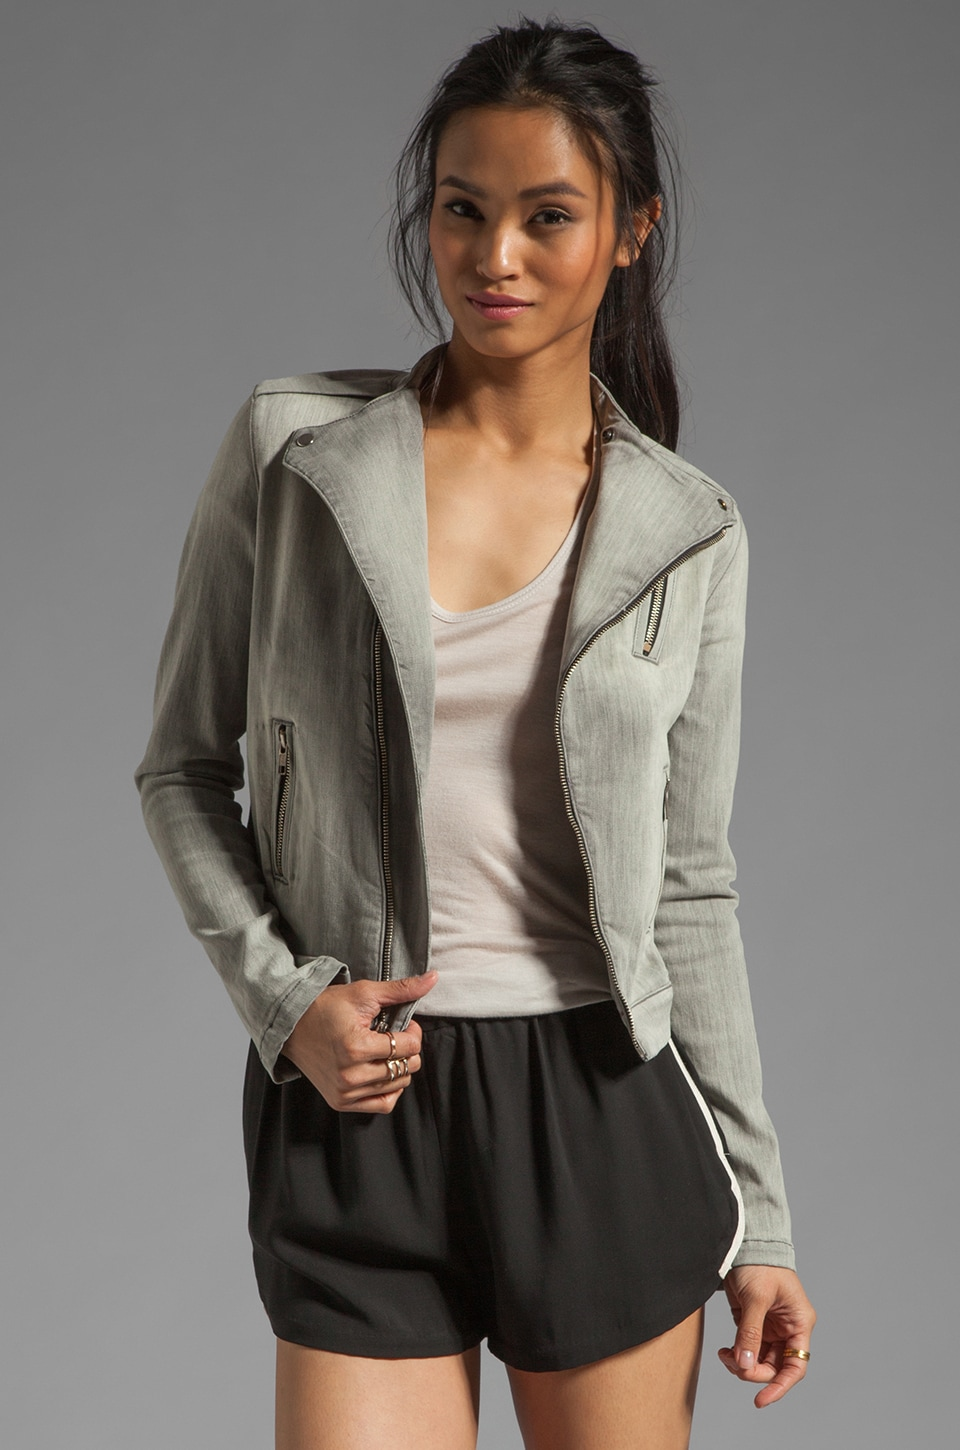 J Brand Moto Jacket in Lunar